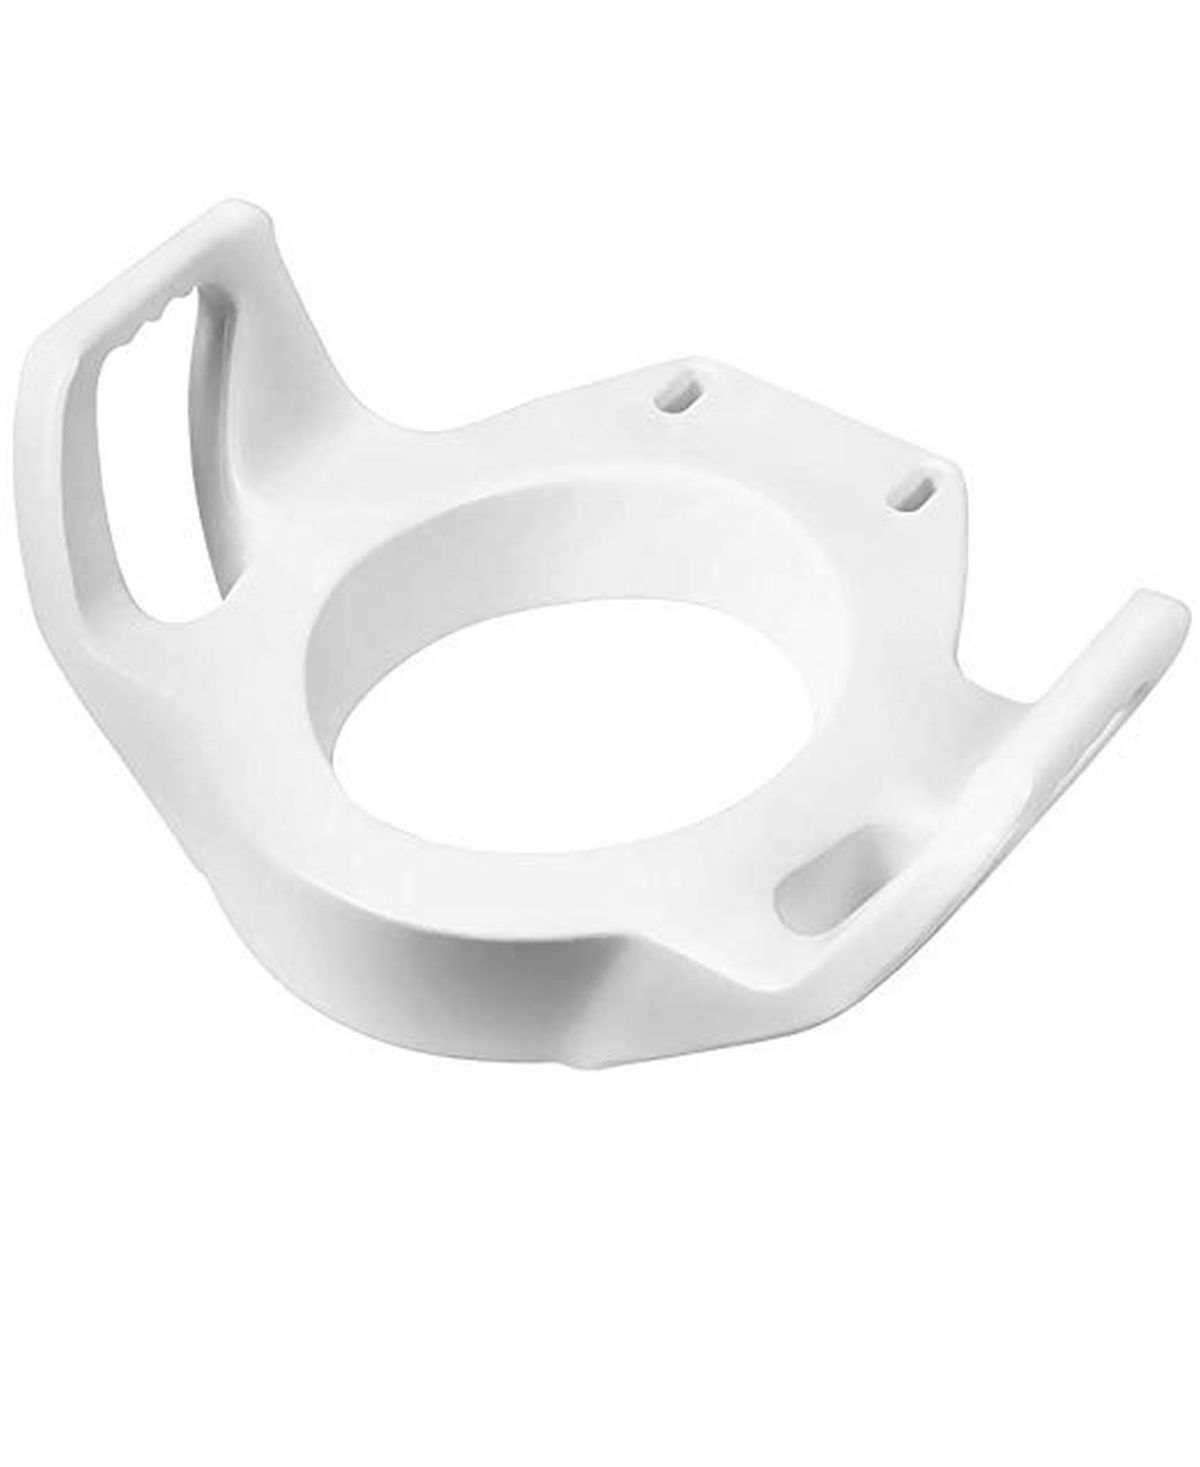 Dmi Toilet Seat Riser With Arms White Toilet Seat Wine Cellar